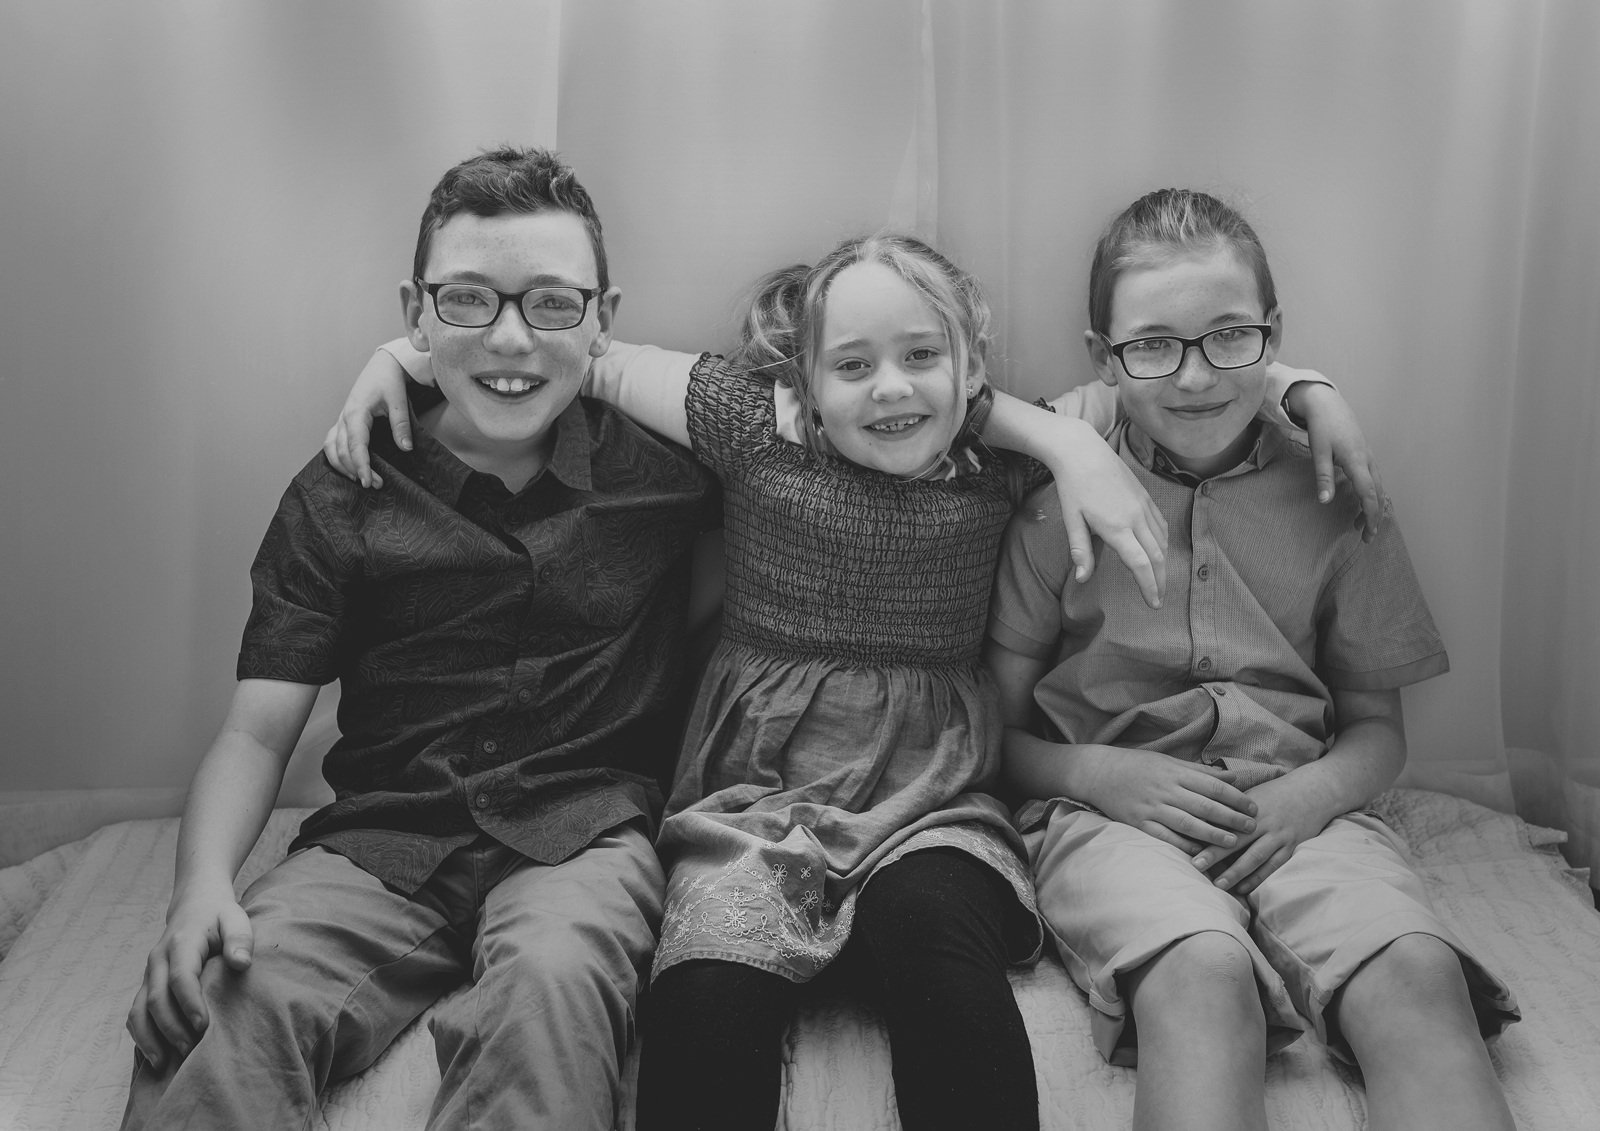 Brothers and sister!